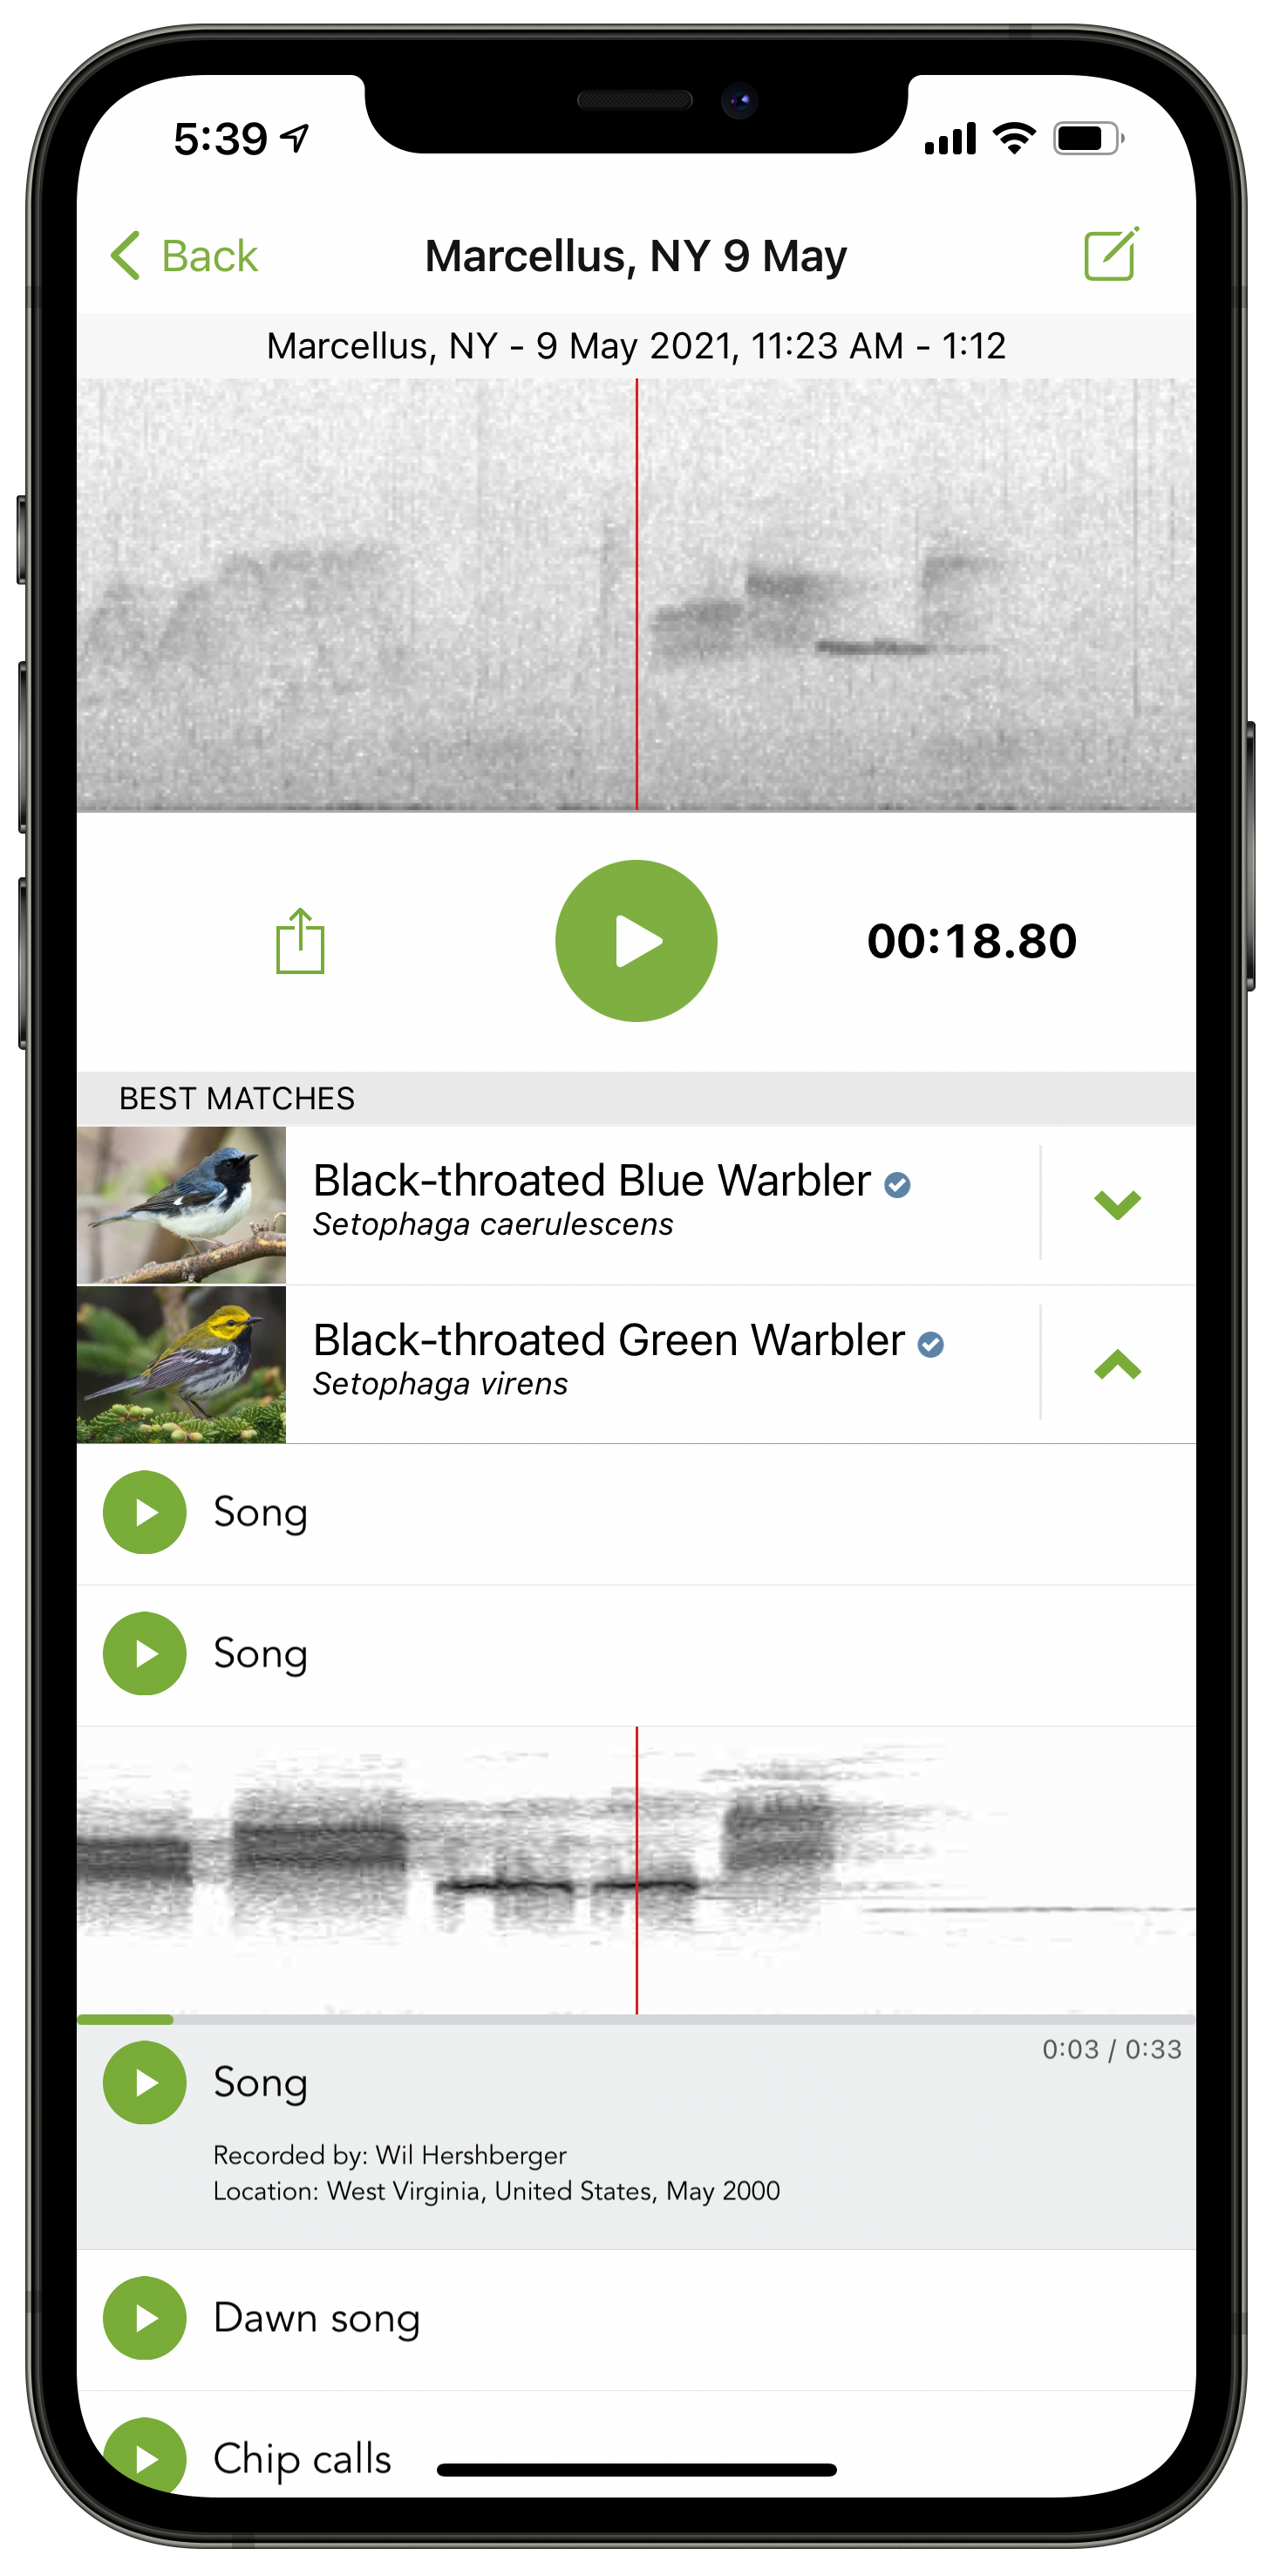 Sound ID - iOS - Best matches - Black-throated Blue and Black-throated Green Warblers